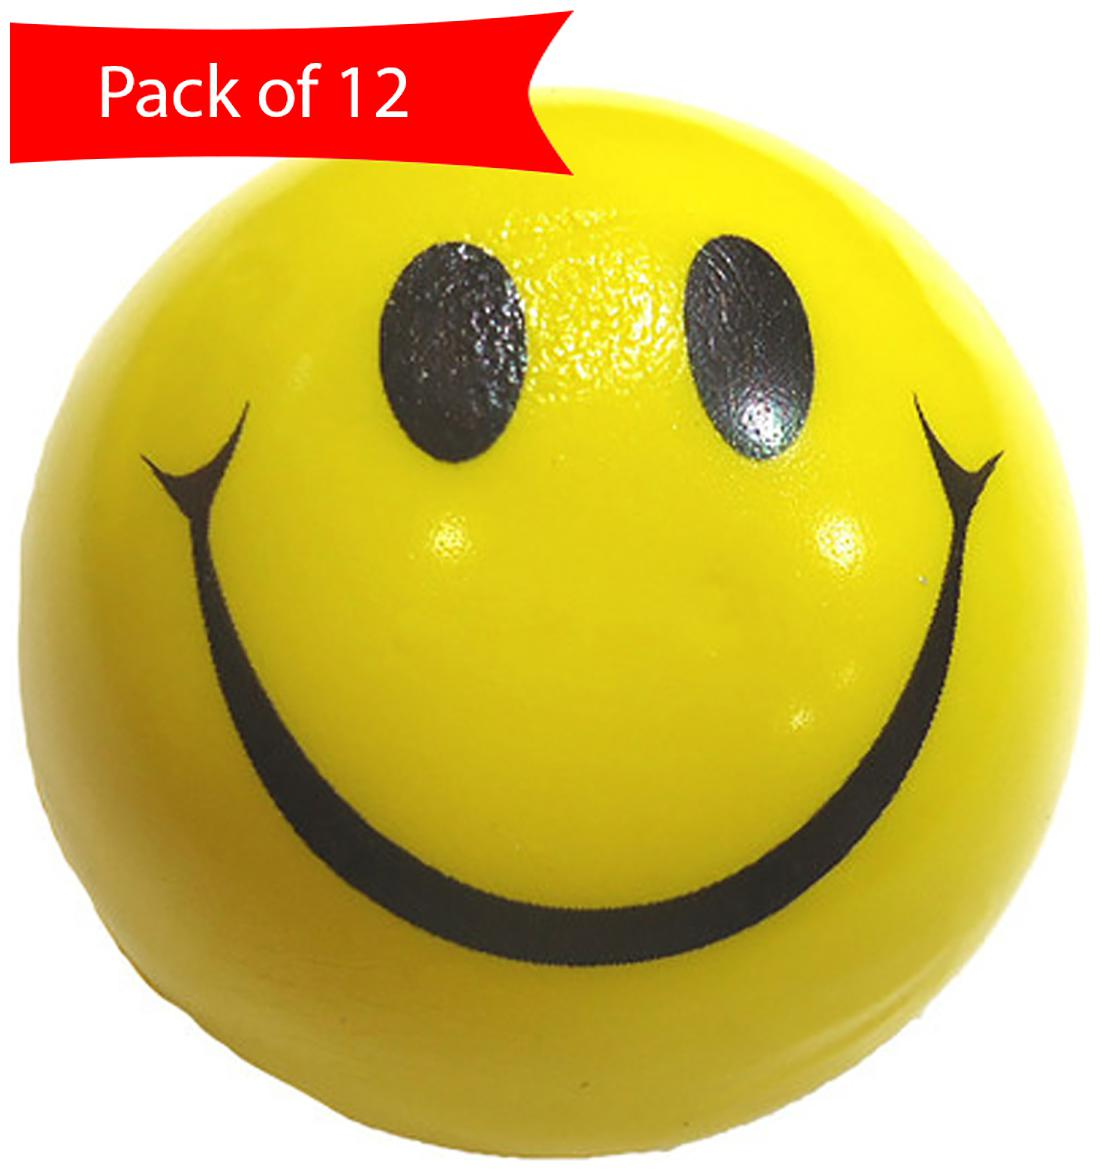 Sigma Smiley Ball  Pack Of 12  by HK E Tail